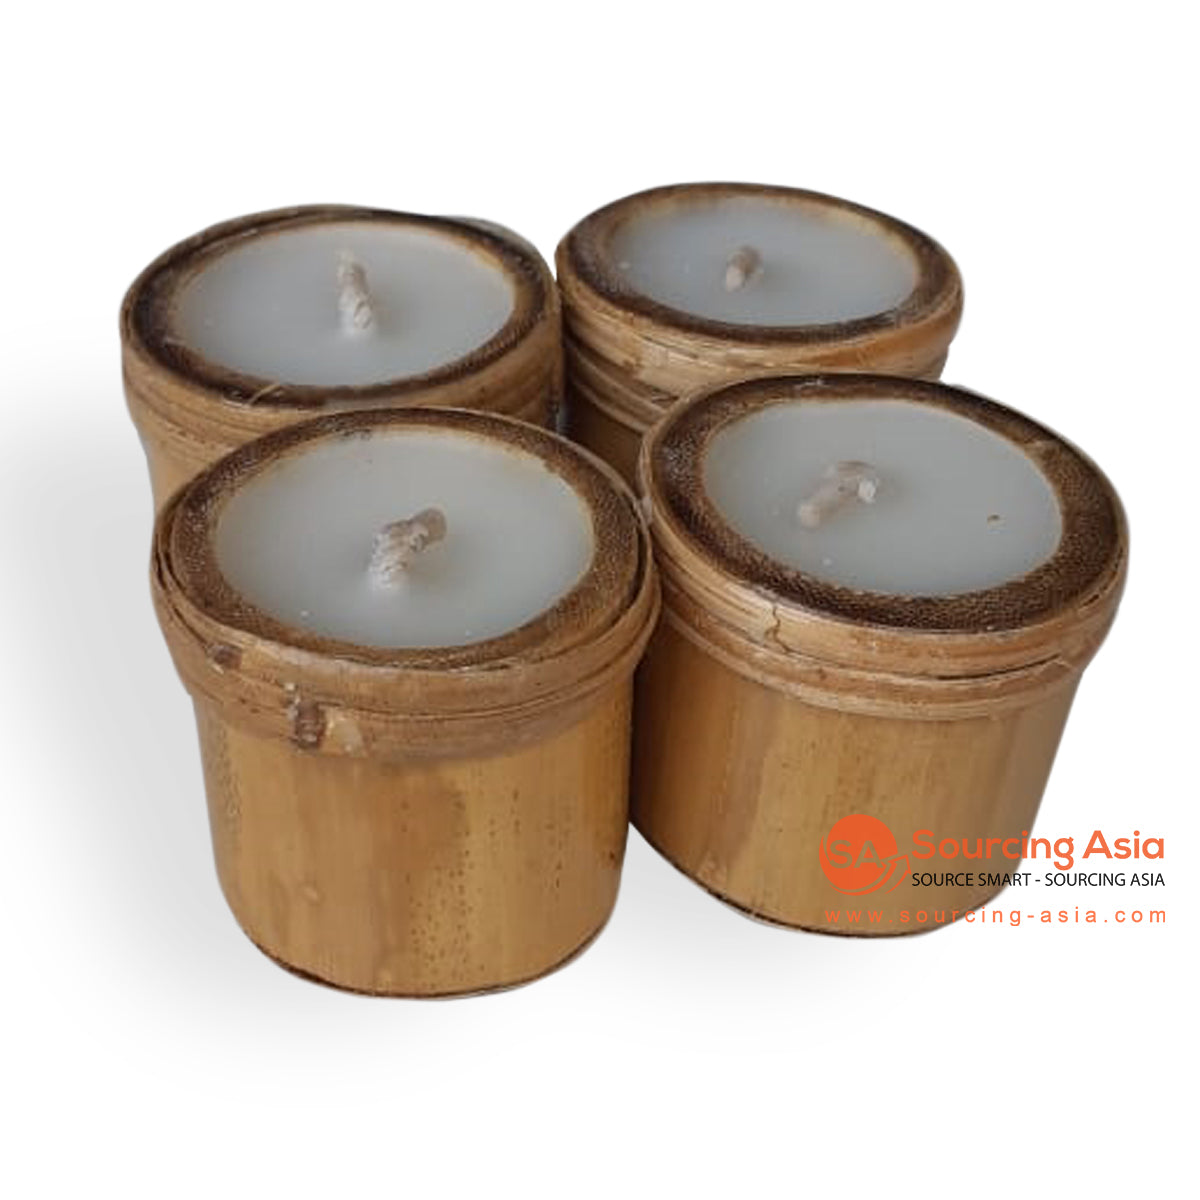 BSC021-1 SET OF 4 CANDLE HOLDER